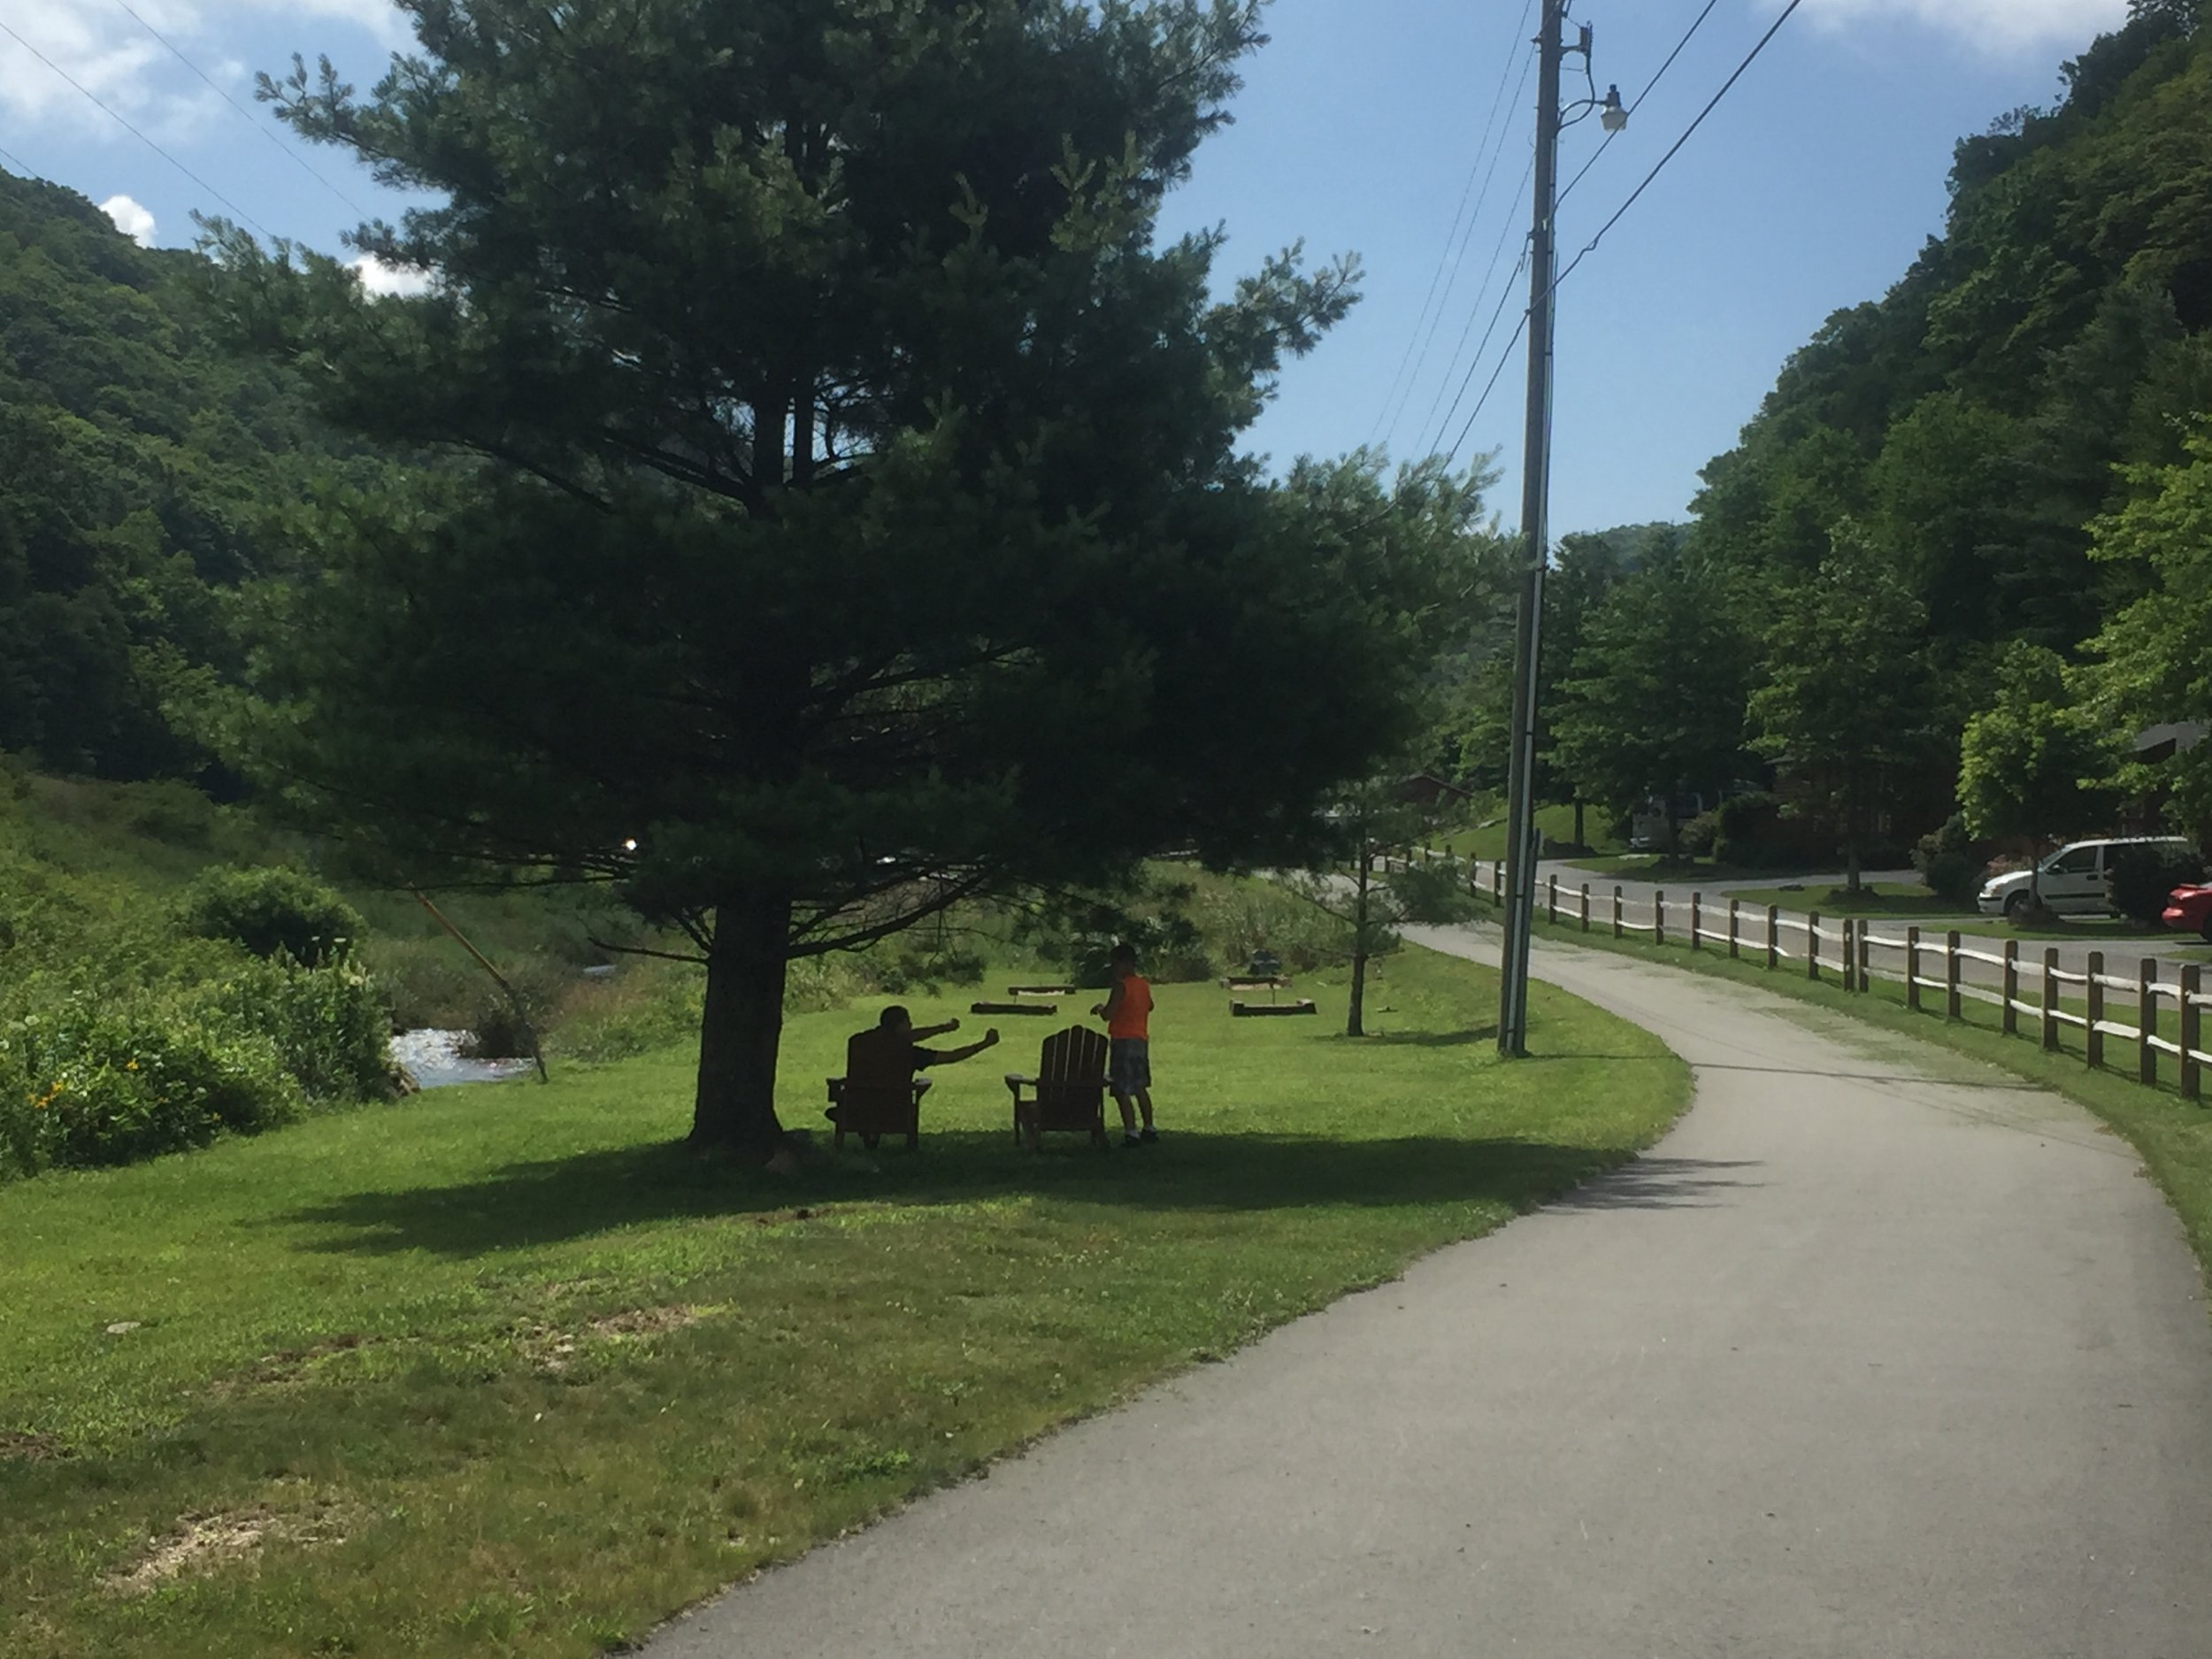 Folks enjoying the shade on the Middle Fork Greenway in front of Riverside log cabins at Mystery Hill.